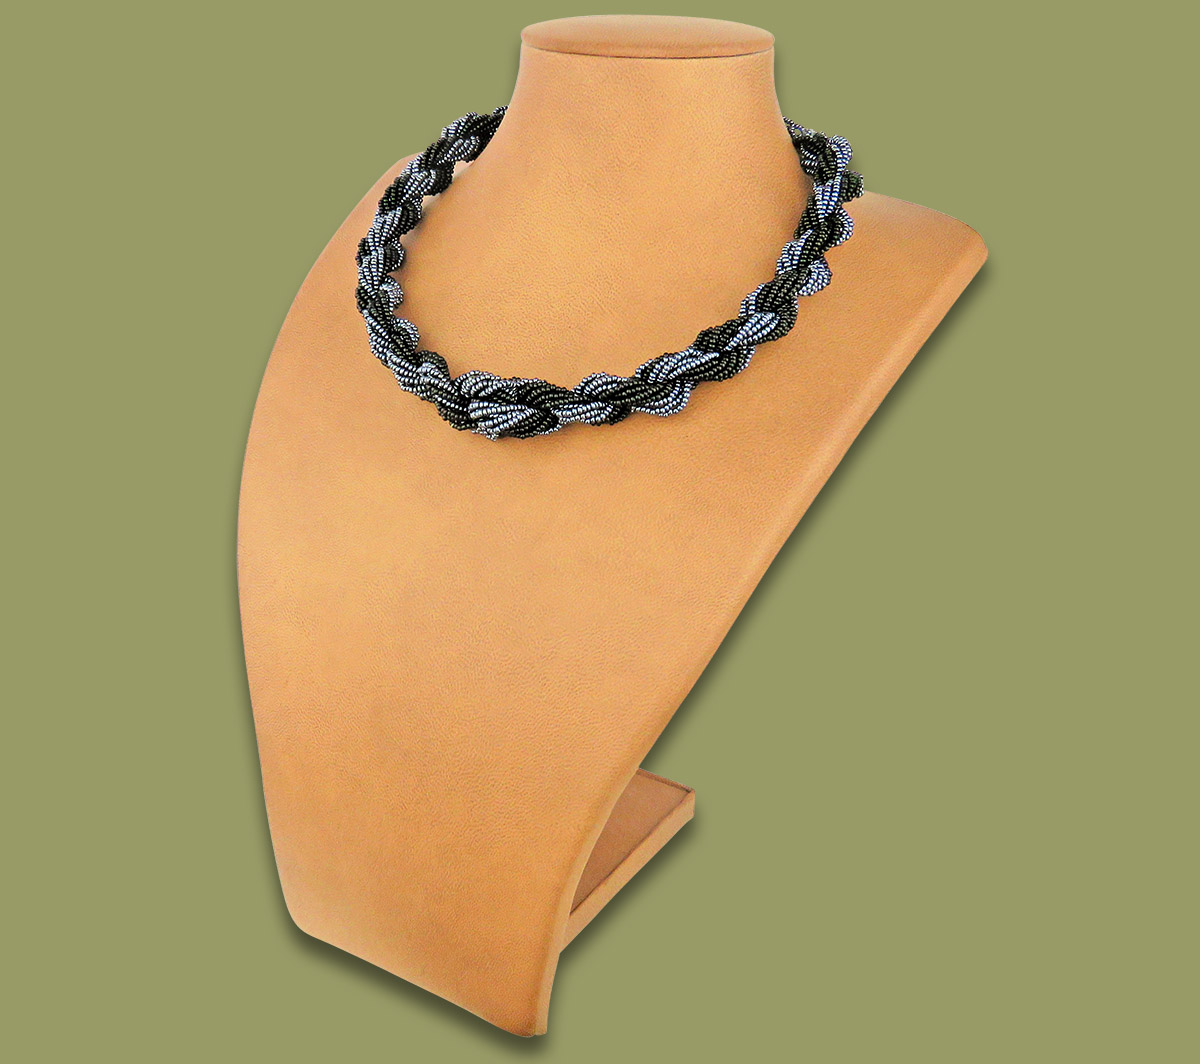 African Beaded Necklace Khanyo Black Metallic